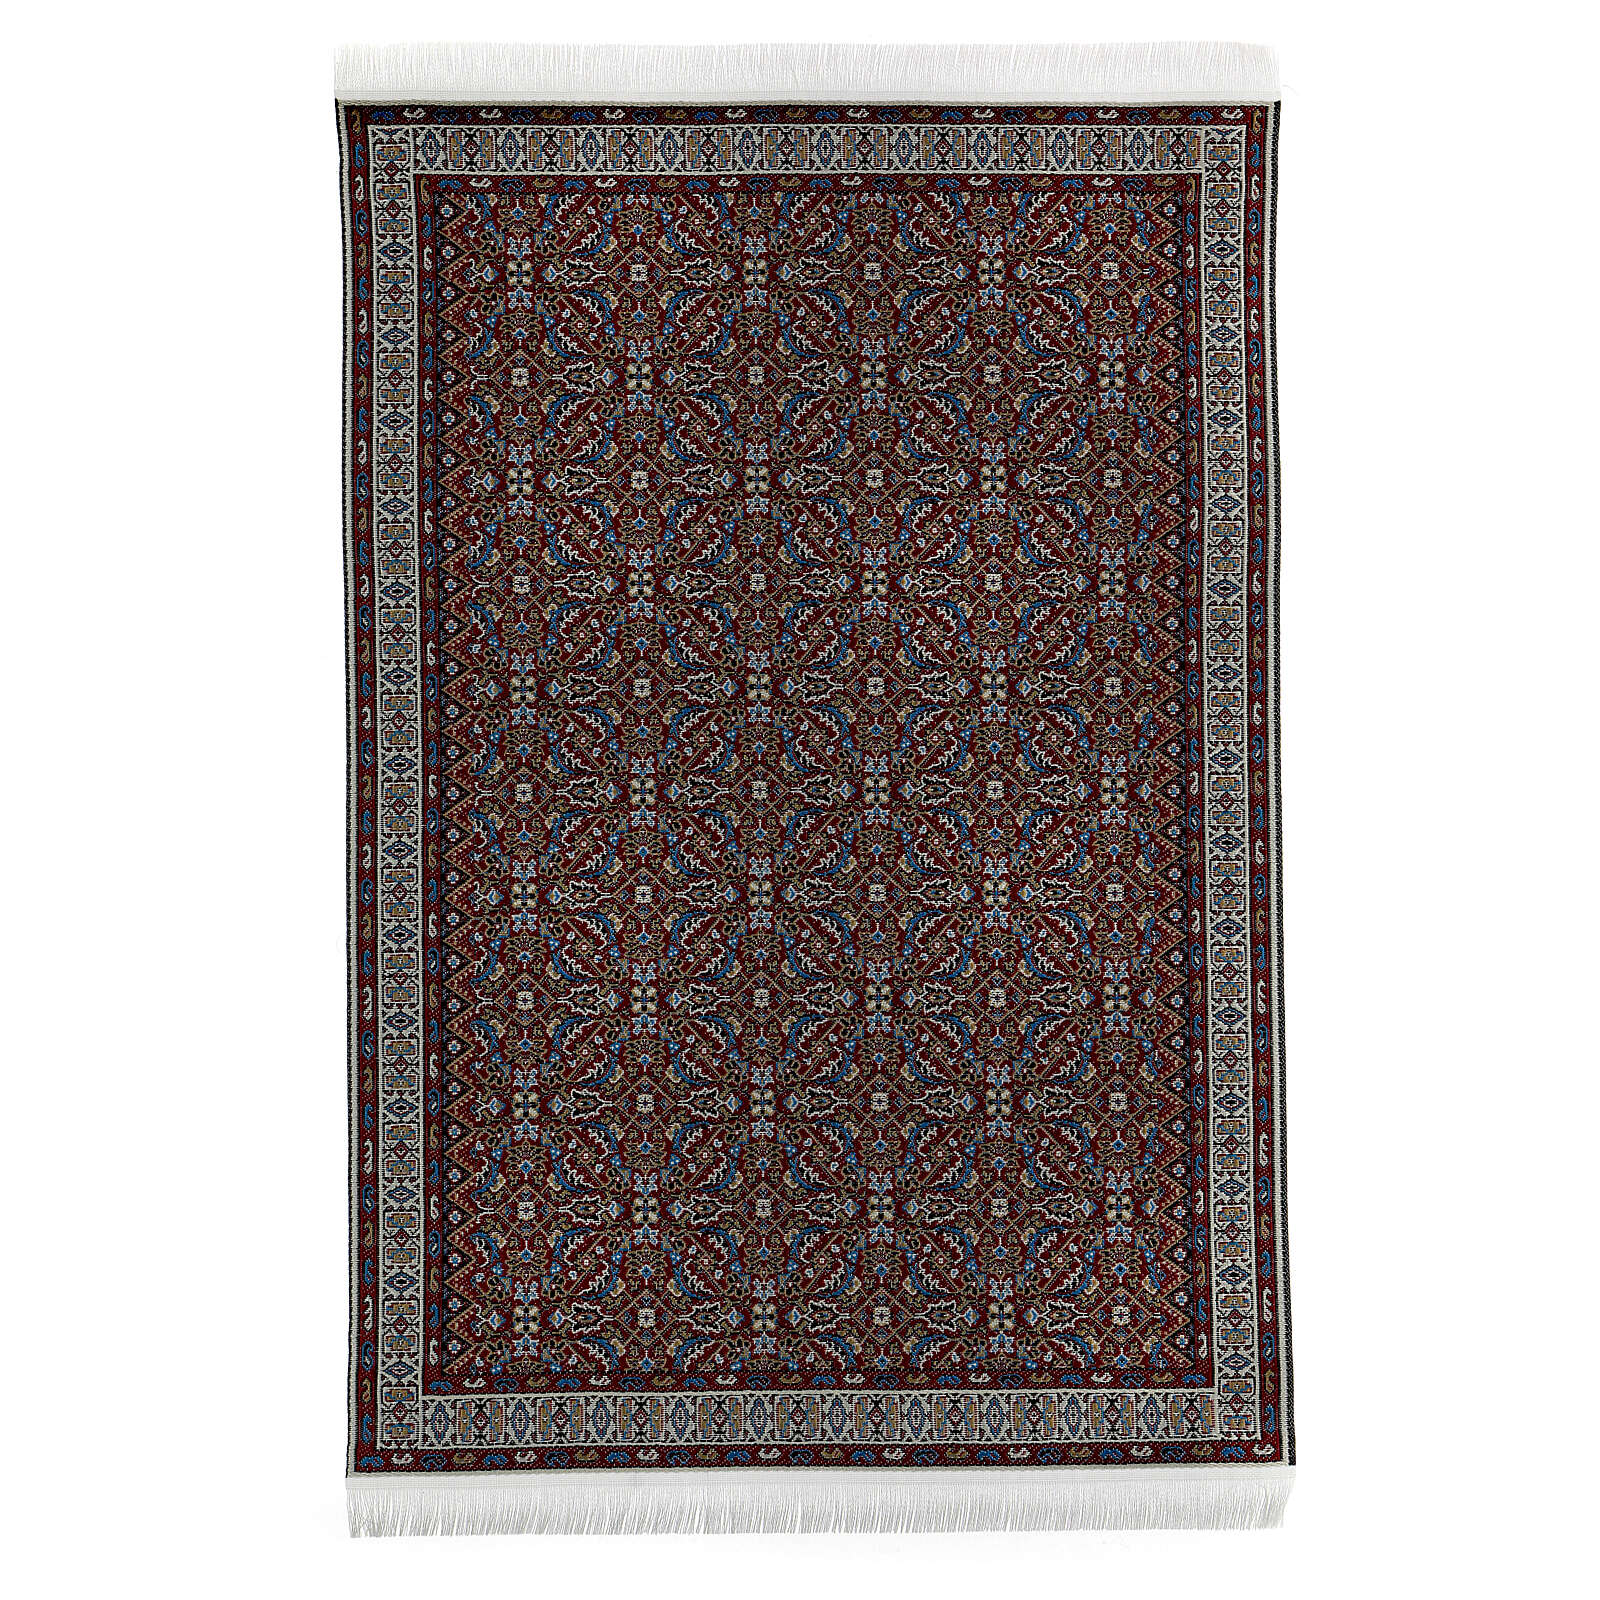 Carpet with fringes 30x20 cm for Nativity Scene with 20-30 cm figurines 4